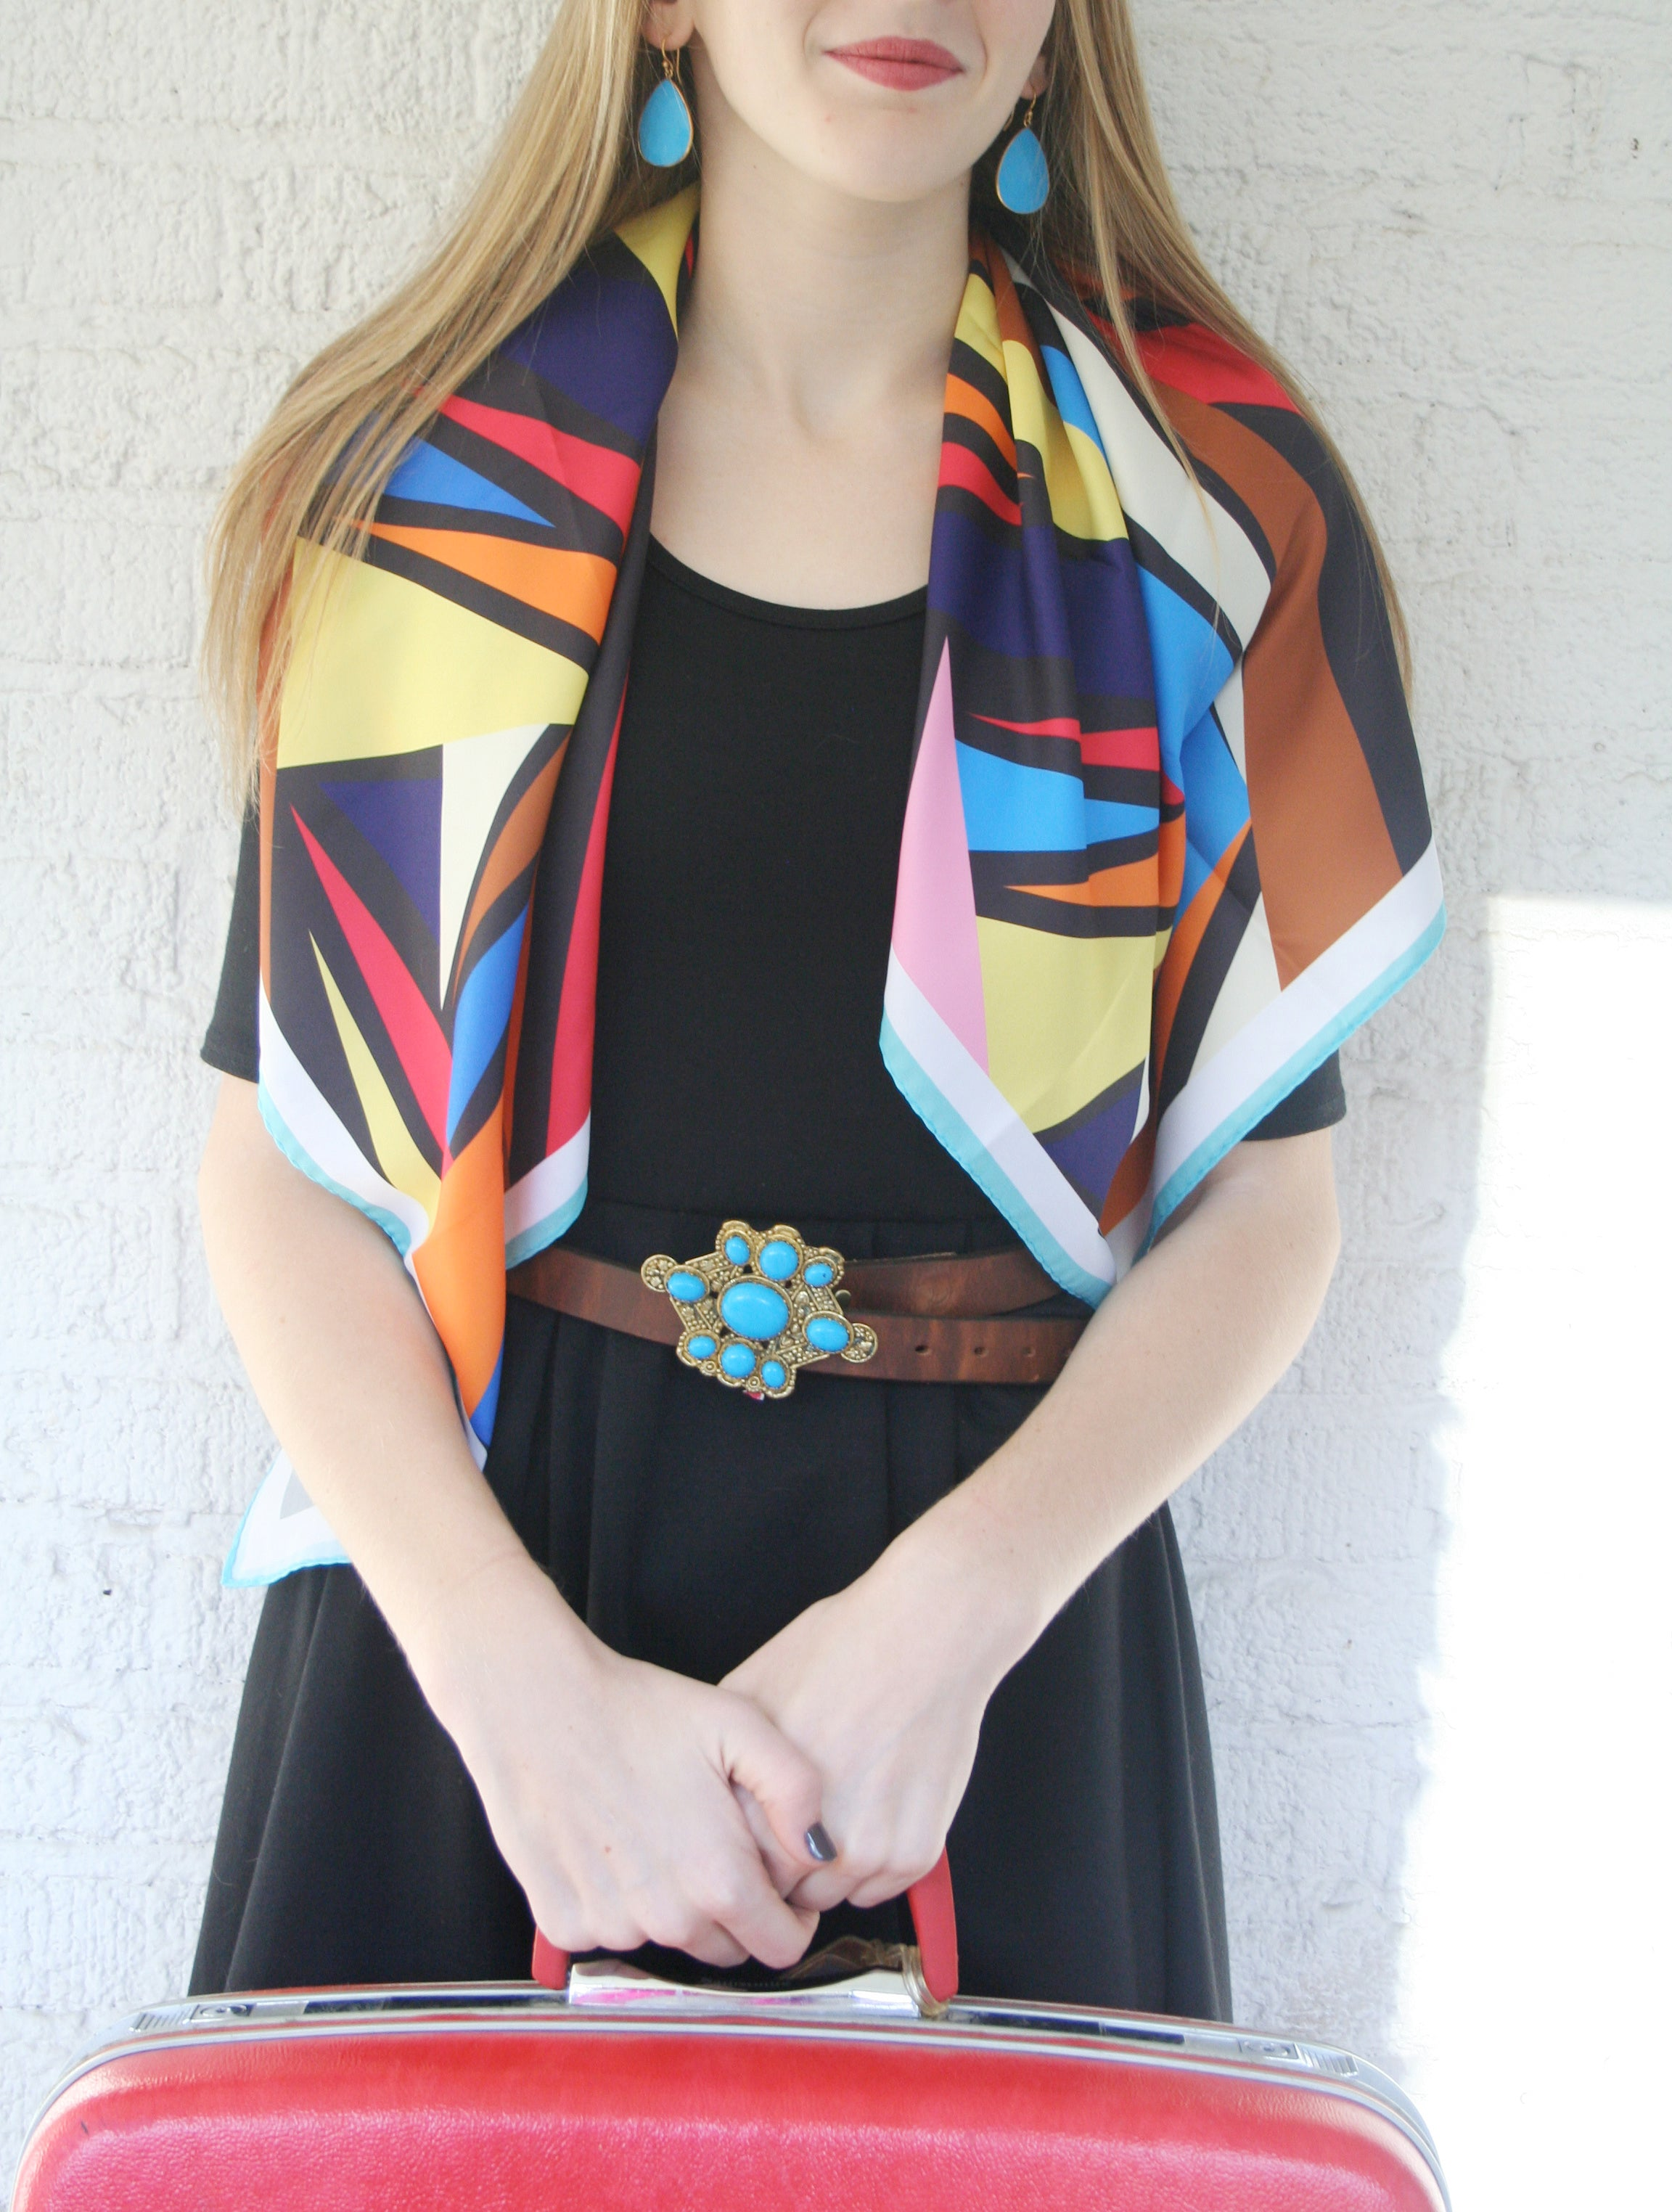 All scarves on sale for $40 (originally $68)